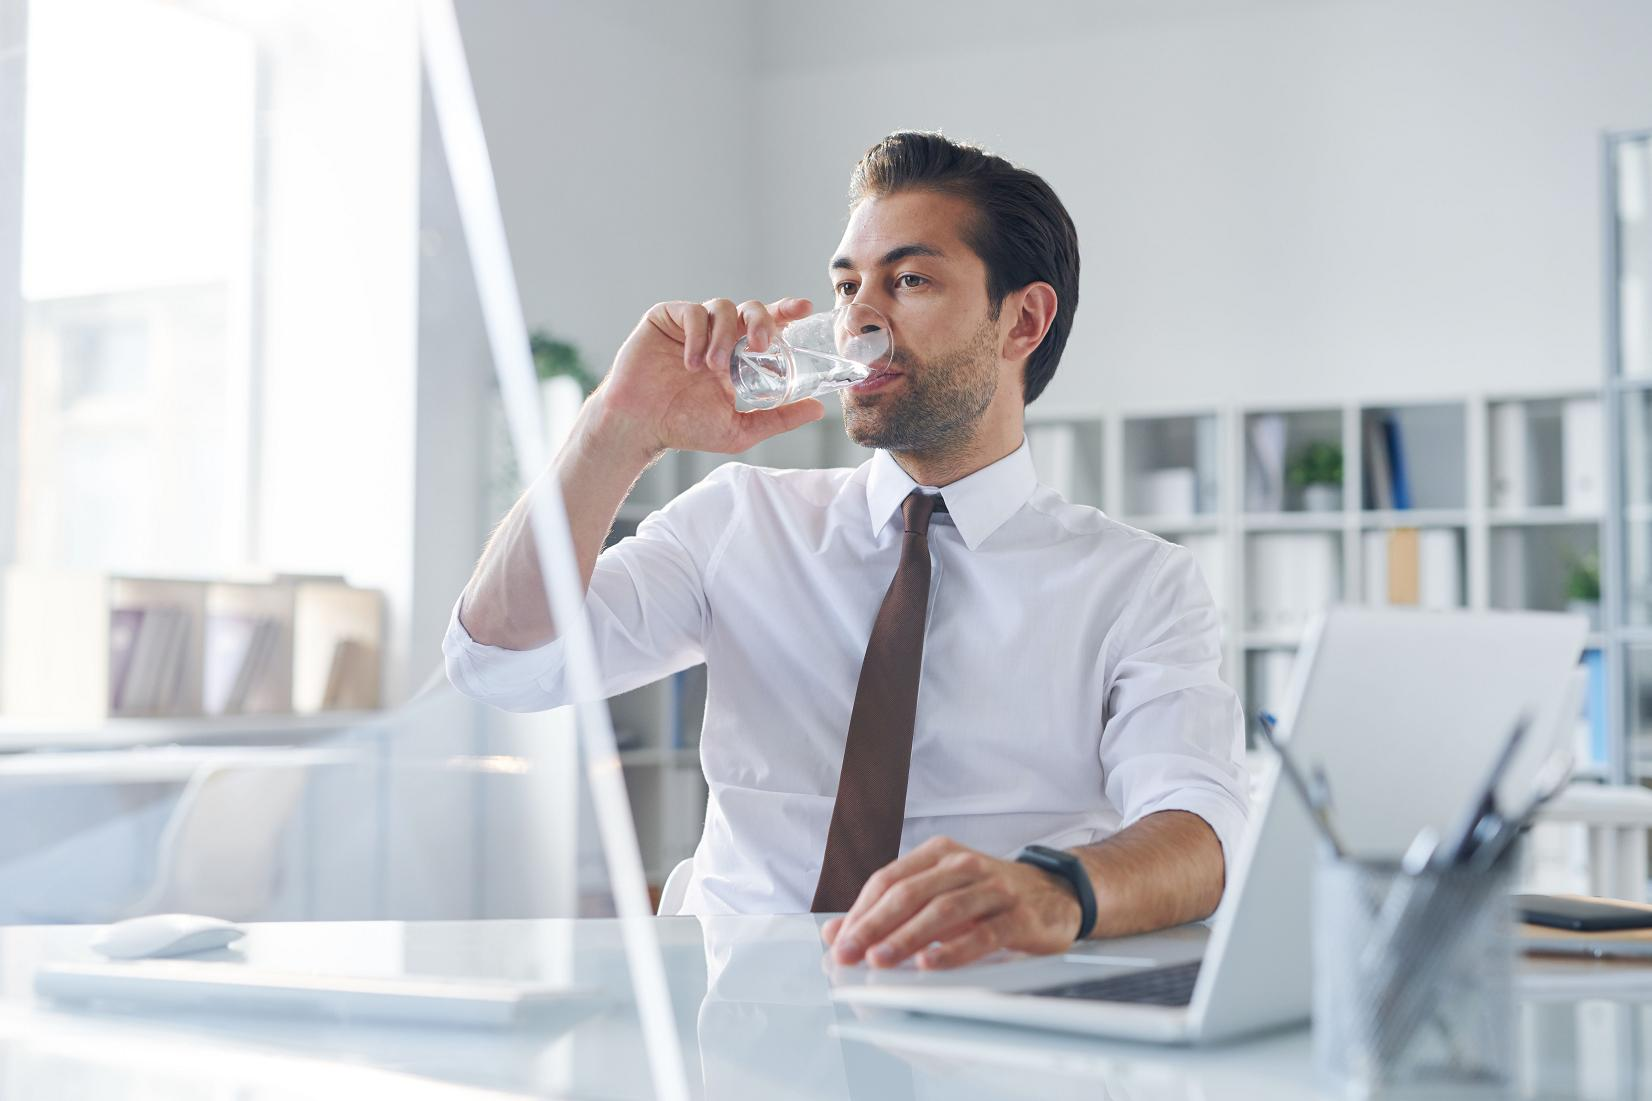 Thirsty young broker having glass of water